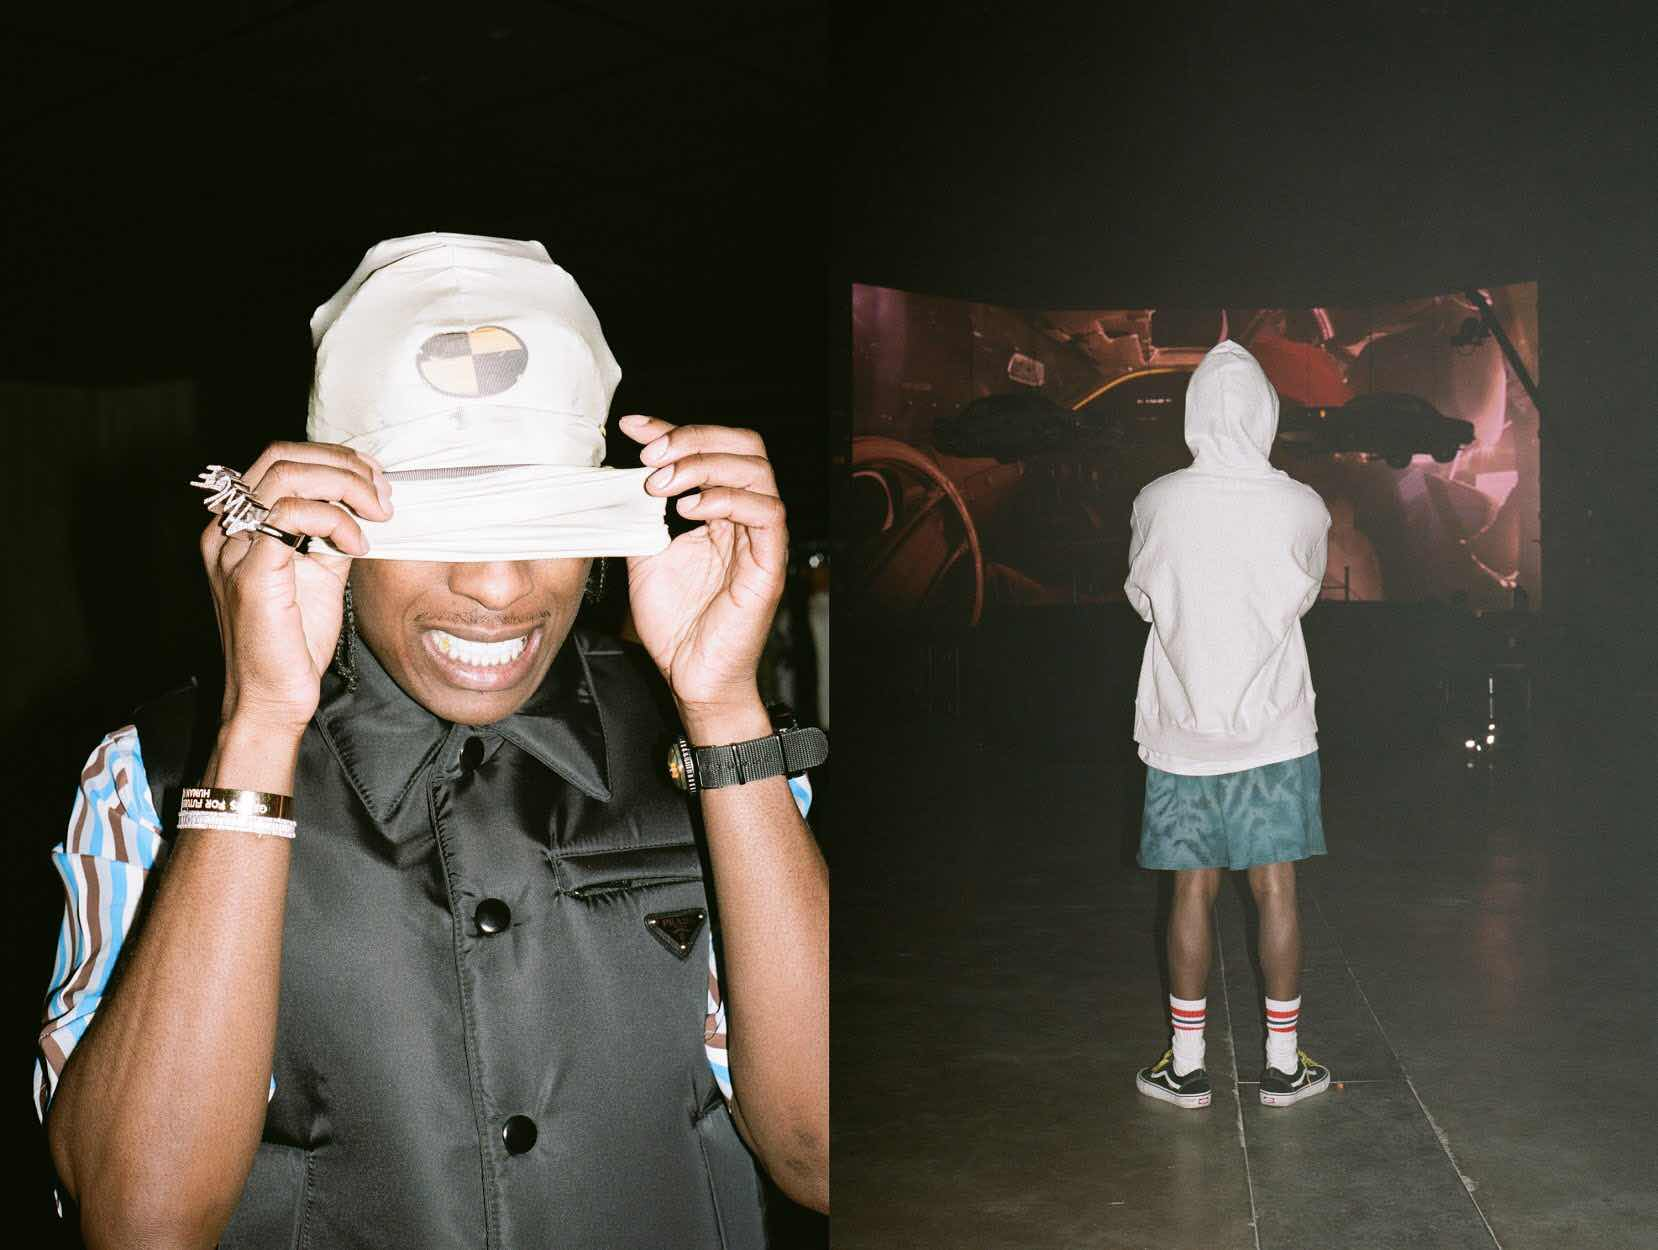 A$ap Rocky for GQ while on Tour